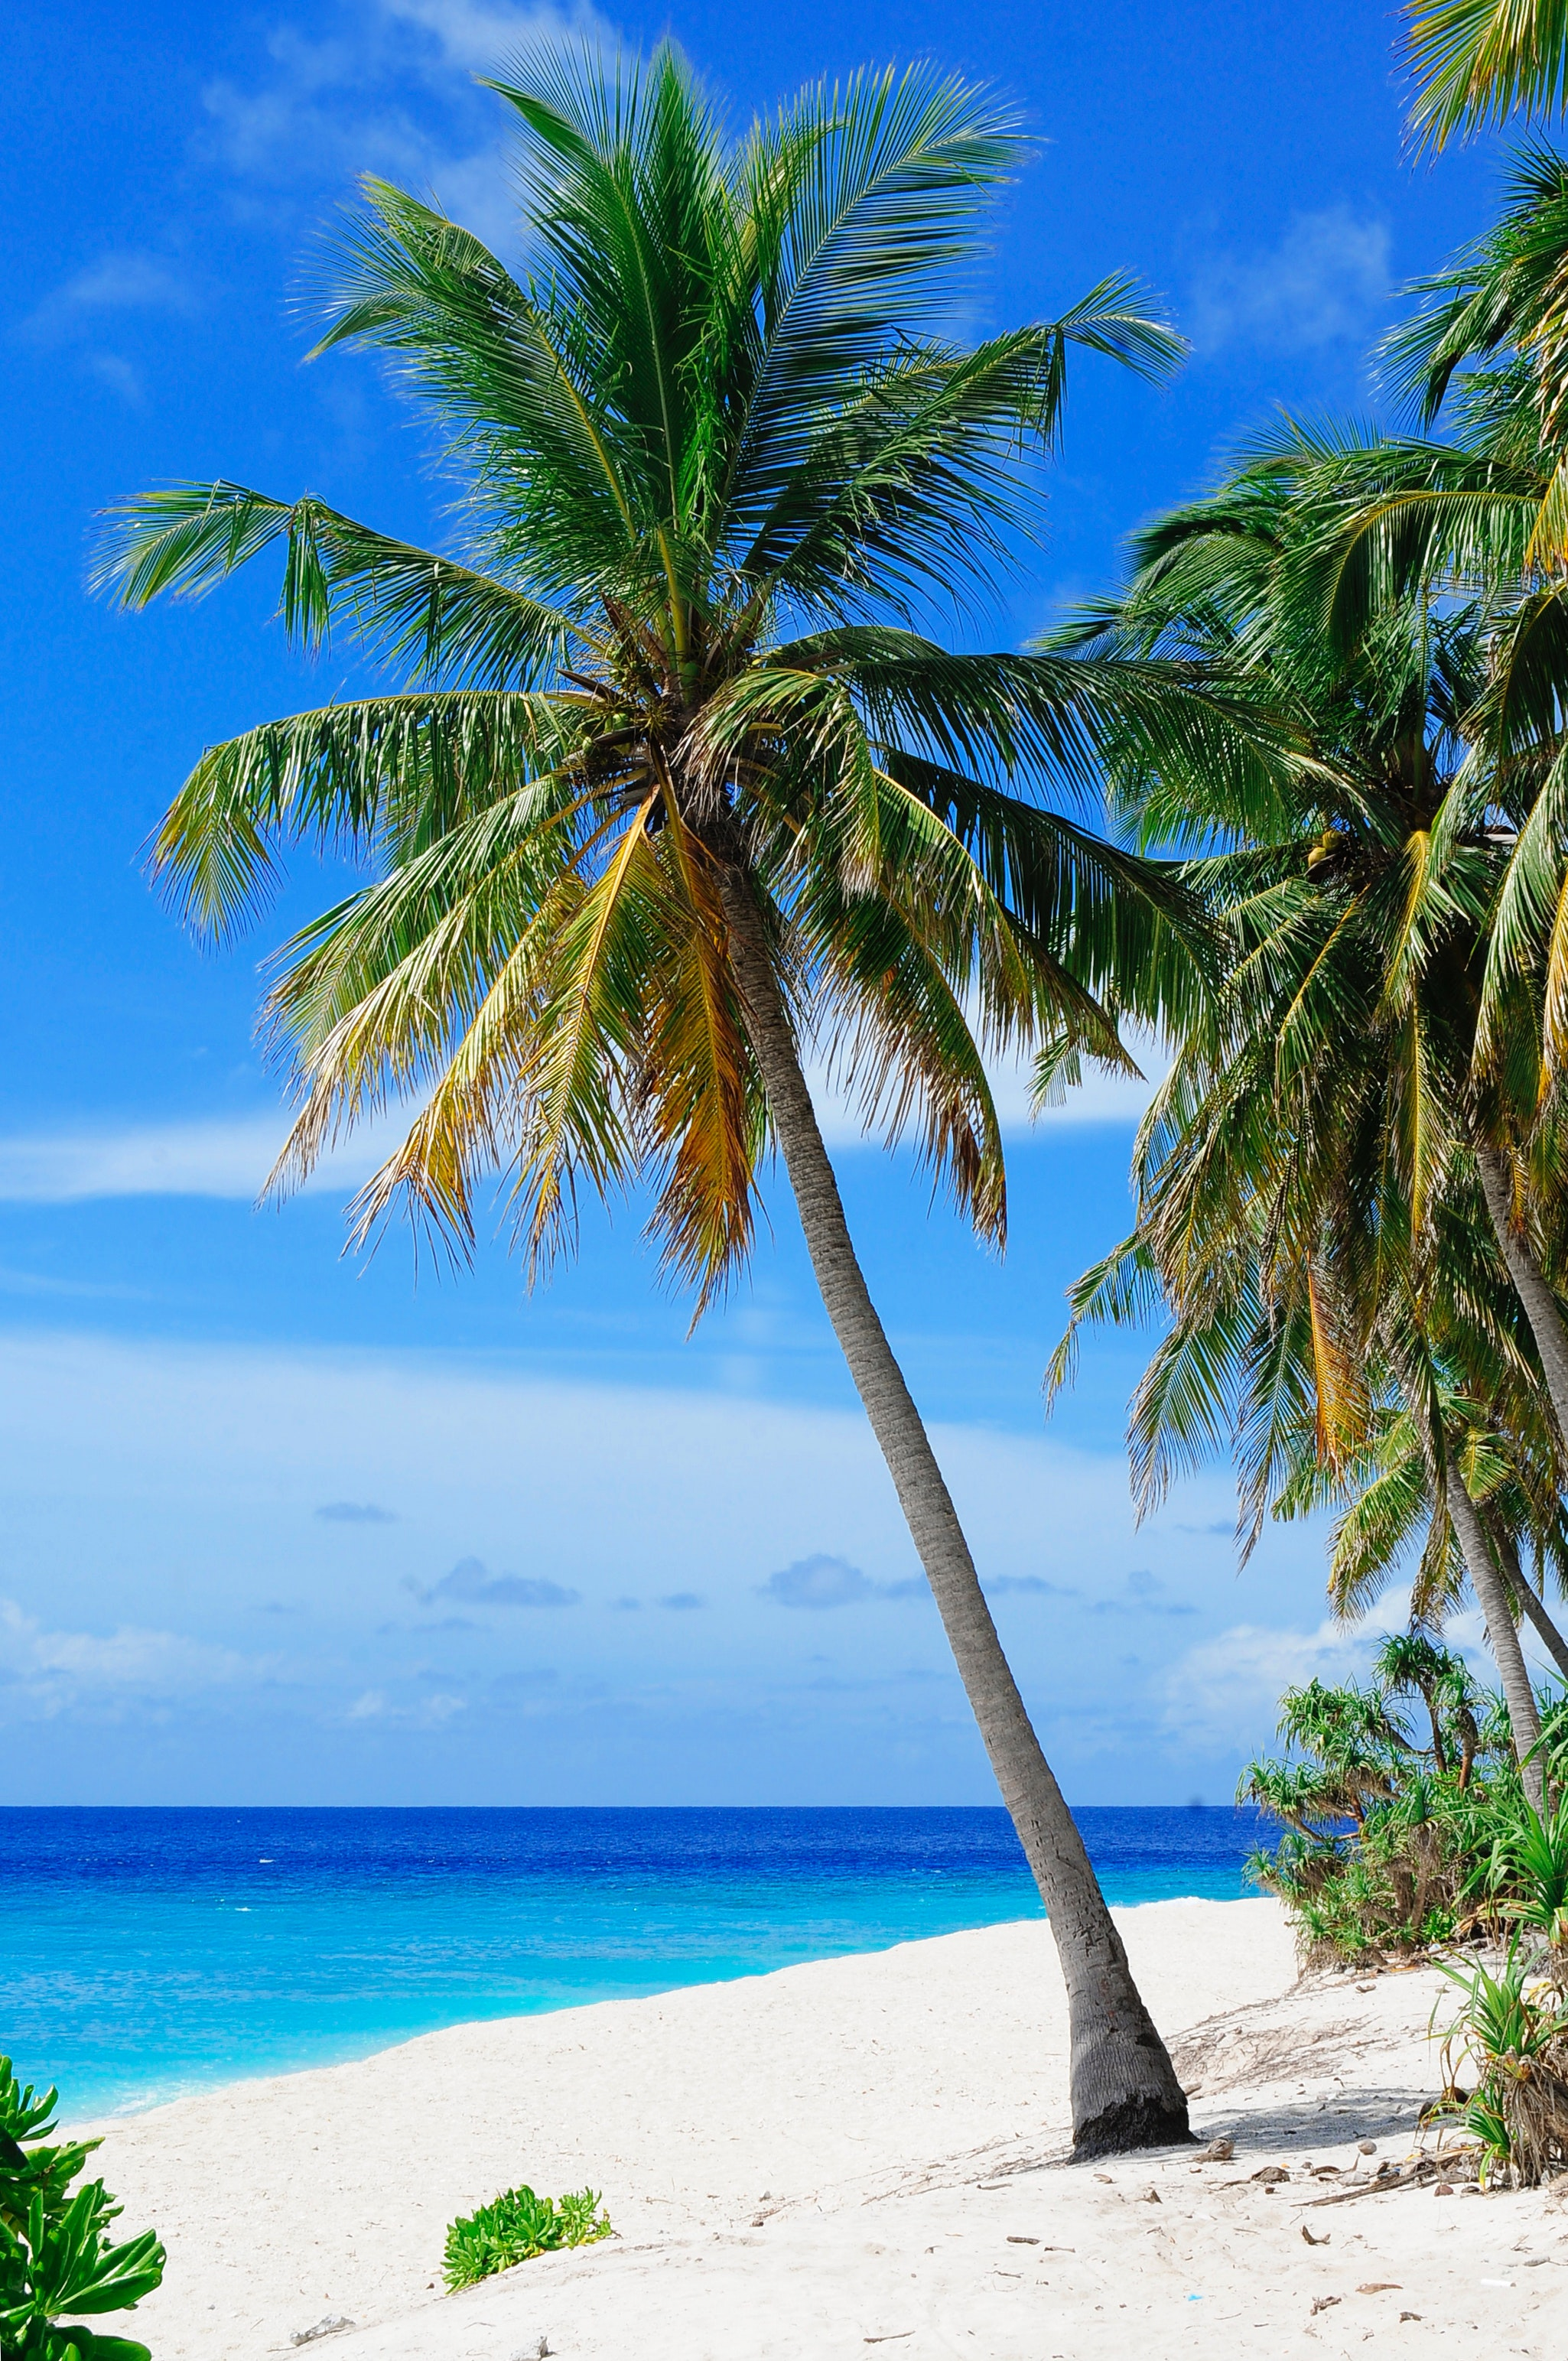 Coconut Tree Near Body Of Water Under Blue Sky · Free